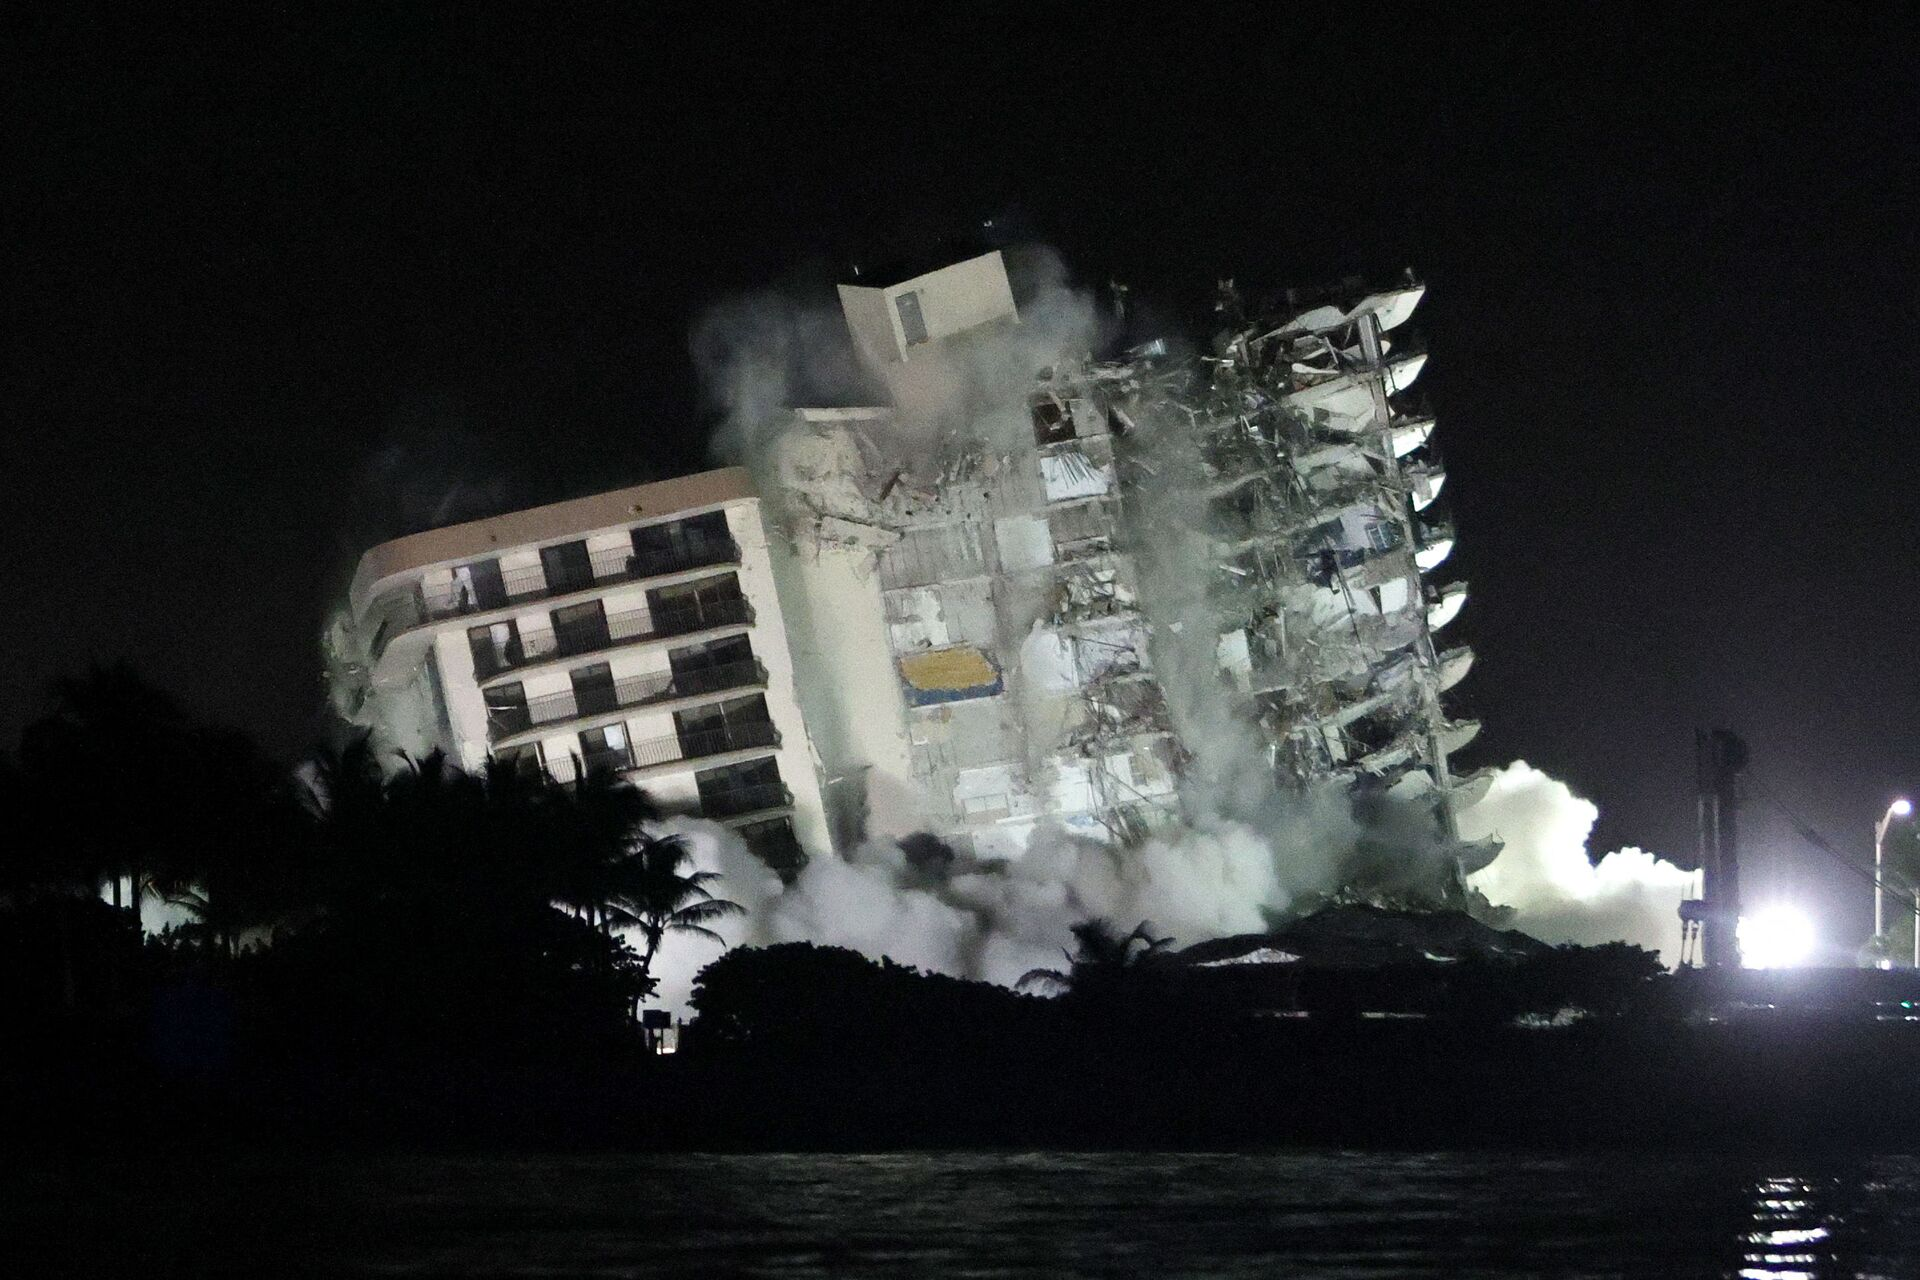 The remaining part of the partially collapsed 12-story Champlain Towers South condo building falls with a controlled demolition on July 4, 2021 in Surfside, Florida. The decision by officials to bring the rest of the building down was brought on by the approach of Tropical Storm Elsa and fears that the structure might come down in an uncontrolled fashion. Over one hundred people are missing as the search-and-rescue effort continues. - Sputnik International, 1920, 07.09.2021